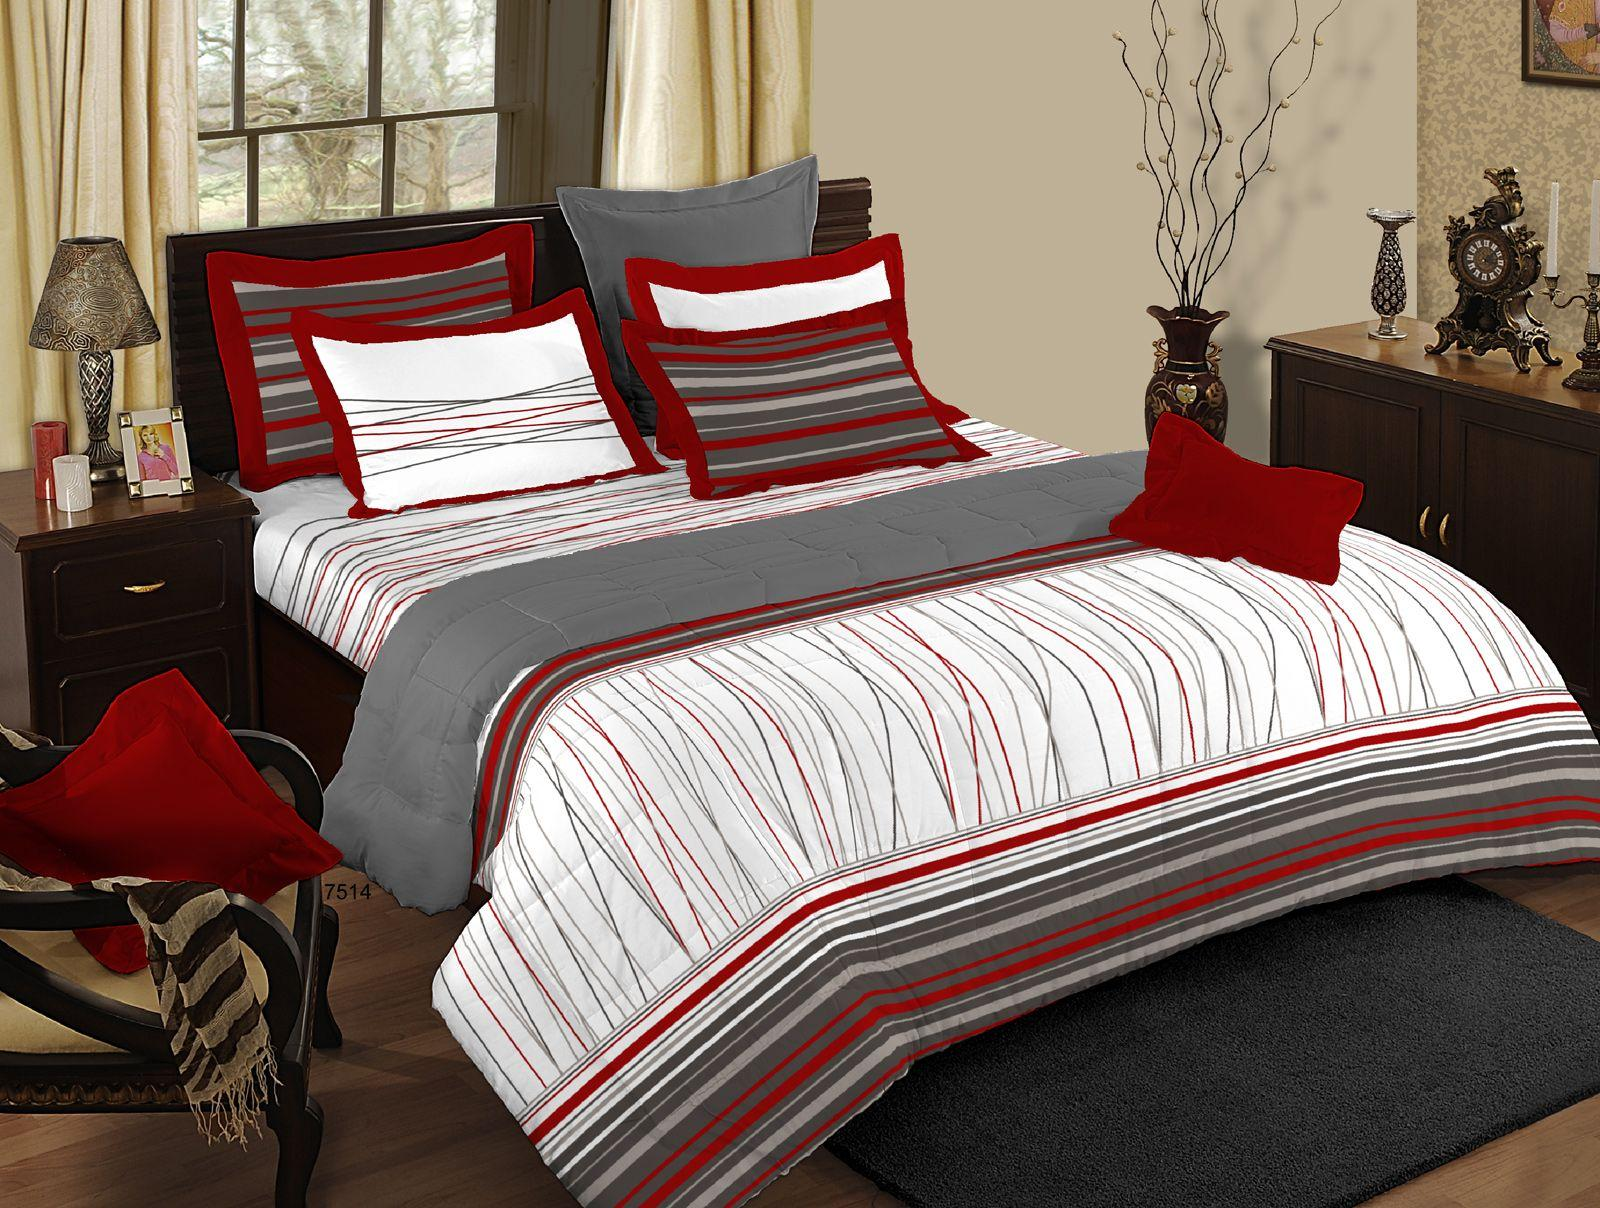 Fun bed sheets ideas homesfeed for Best color bed sheets